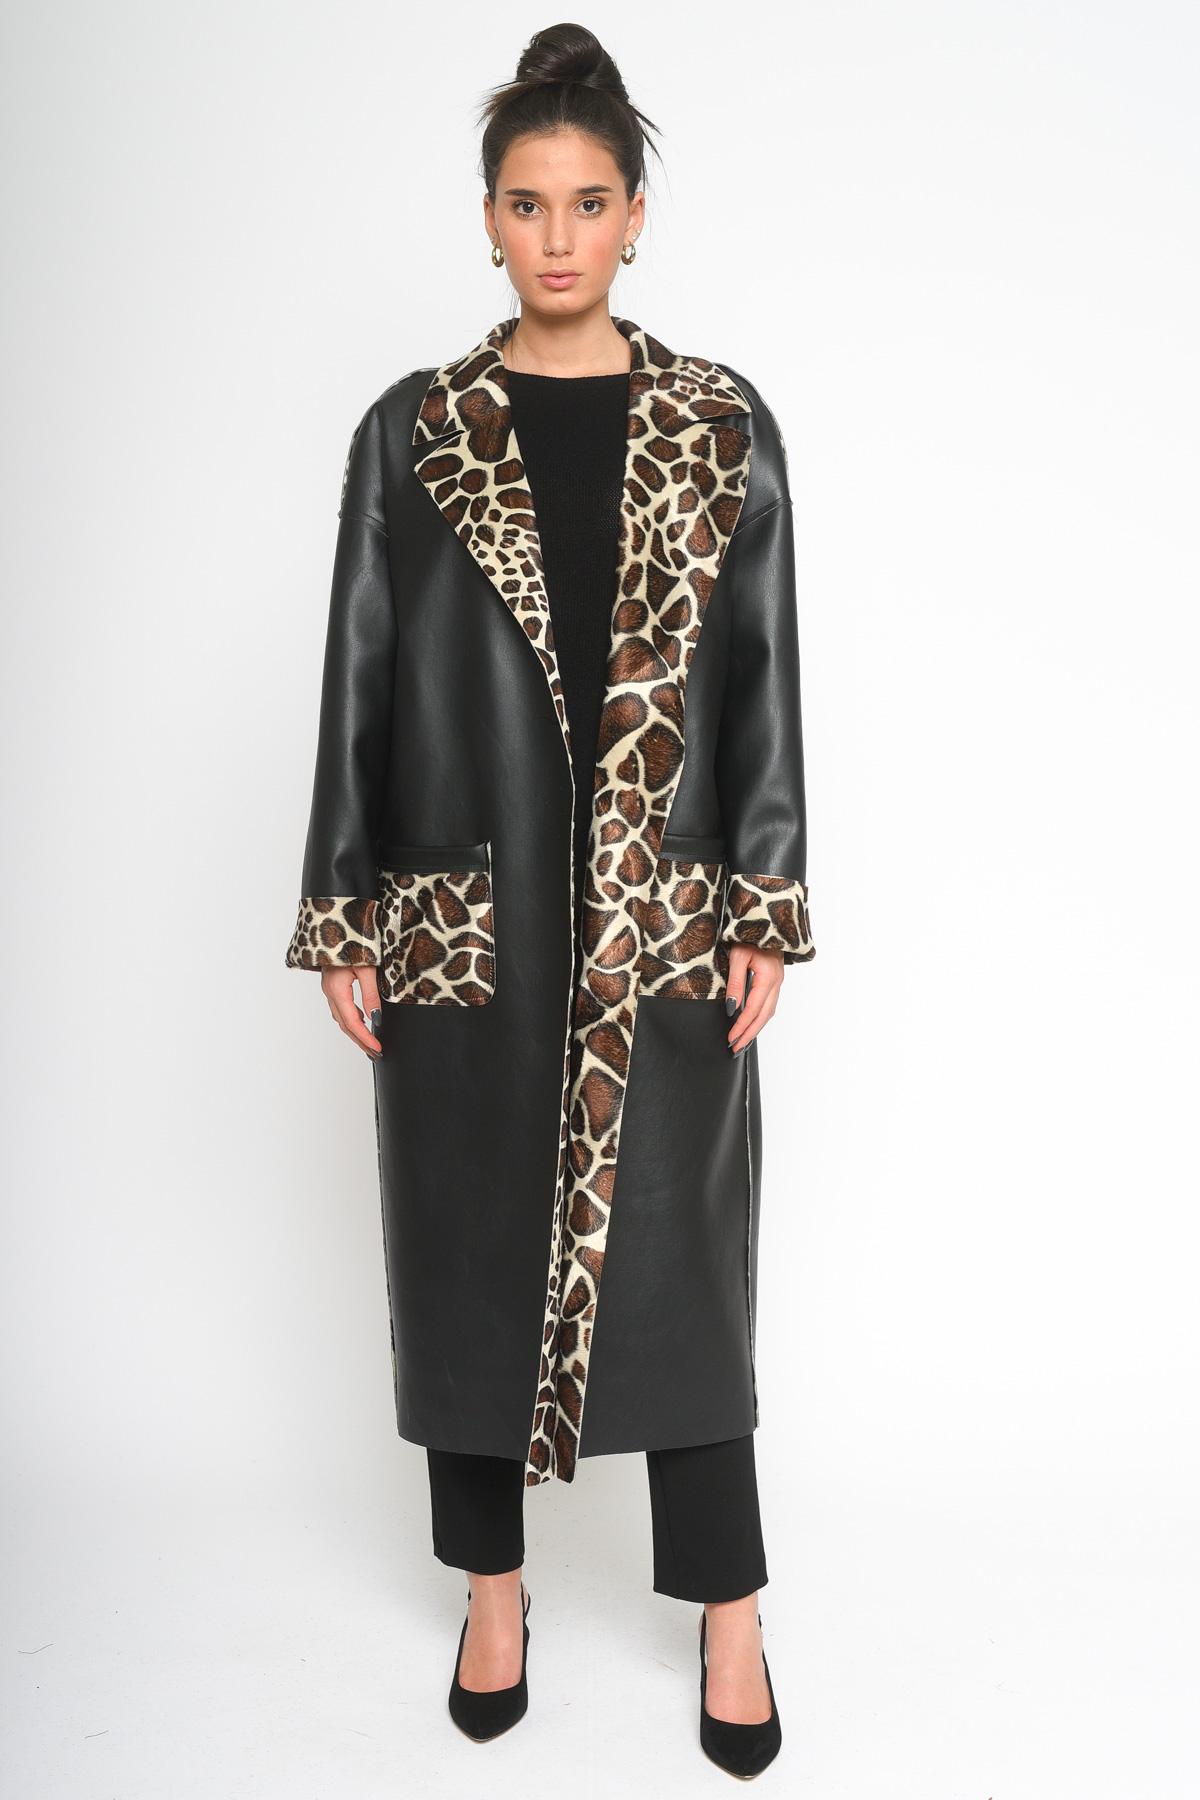 CAPPOTTO IN ECOPELLE REVERSIBILE MACULATO for women - ONLY - Paquito Pronto Moda Shop Online